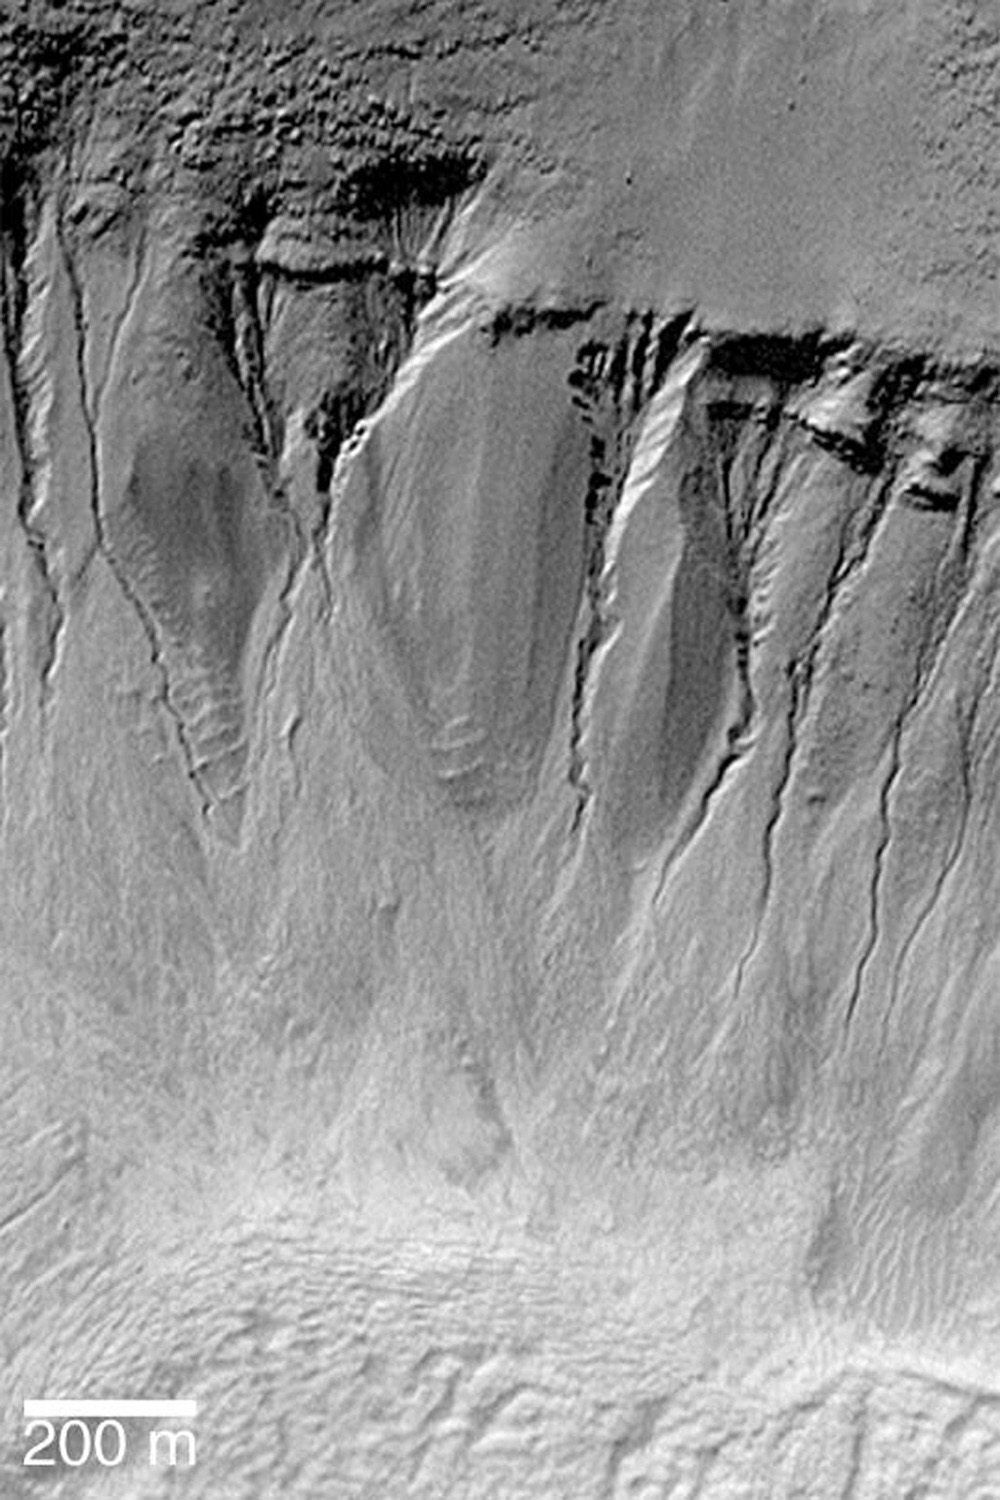 NASA's Mars Global Surveyor shows craters and troughs at polar and middle latitudes on Mars with gullies carved in their walls.